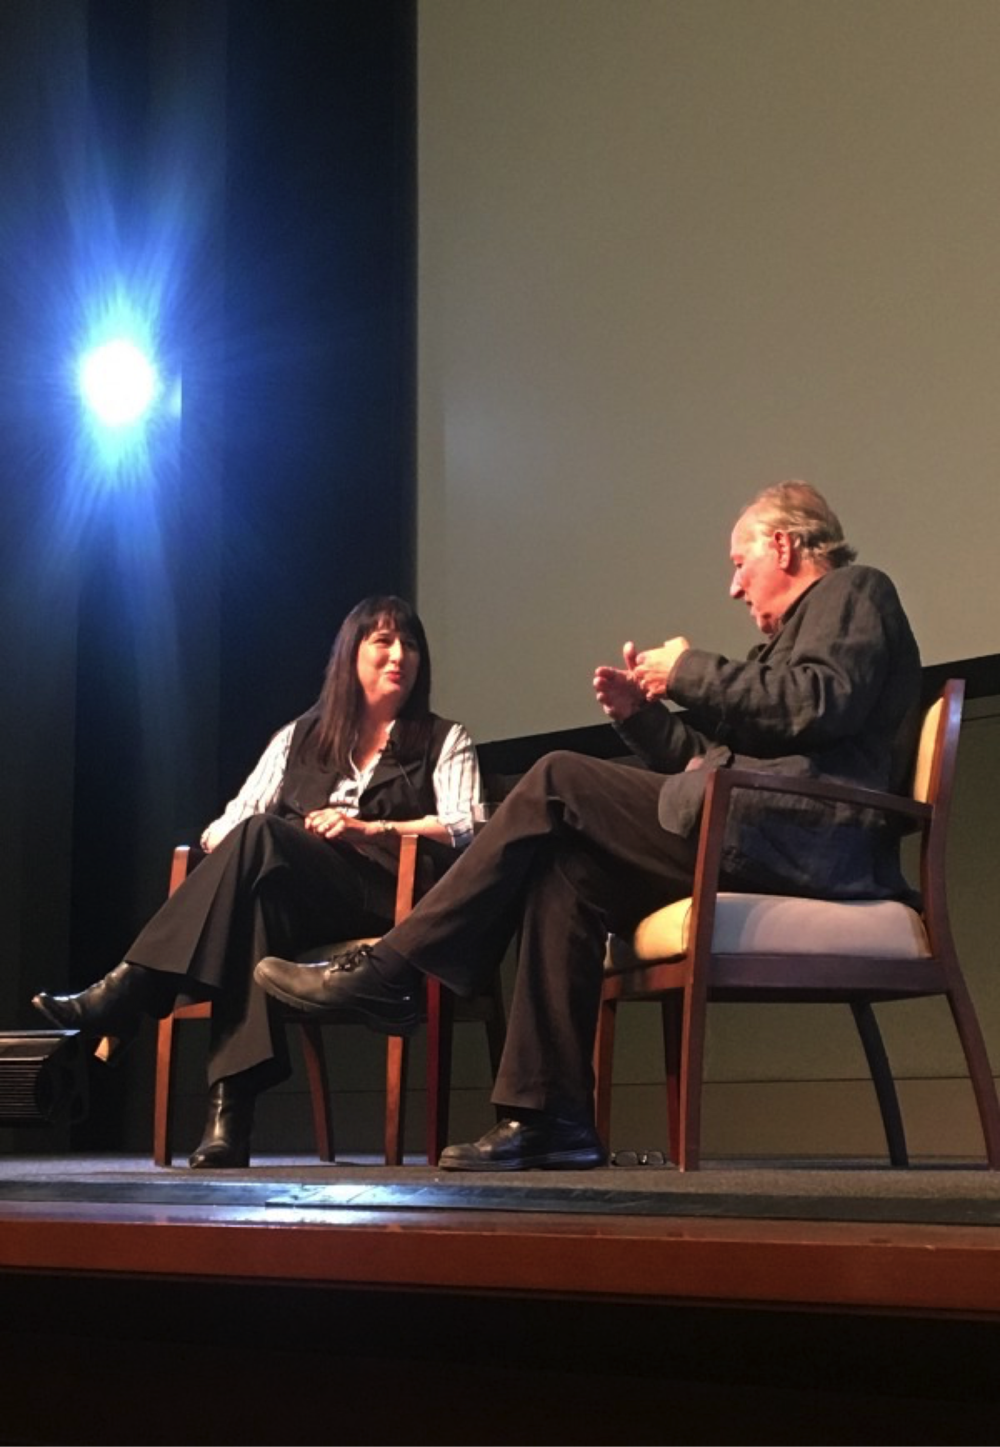 Patrice Petro and Werner Herzog engaged in a lively discussion about his experiences directing  Nosferatu the Vampyre  .